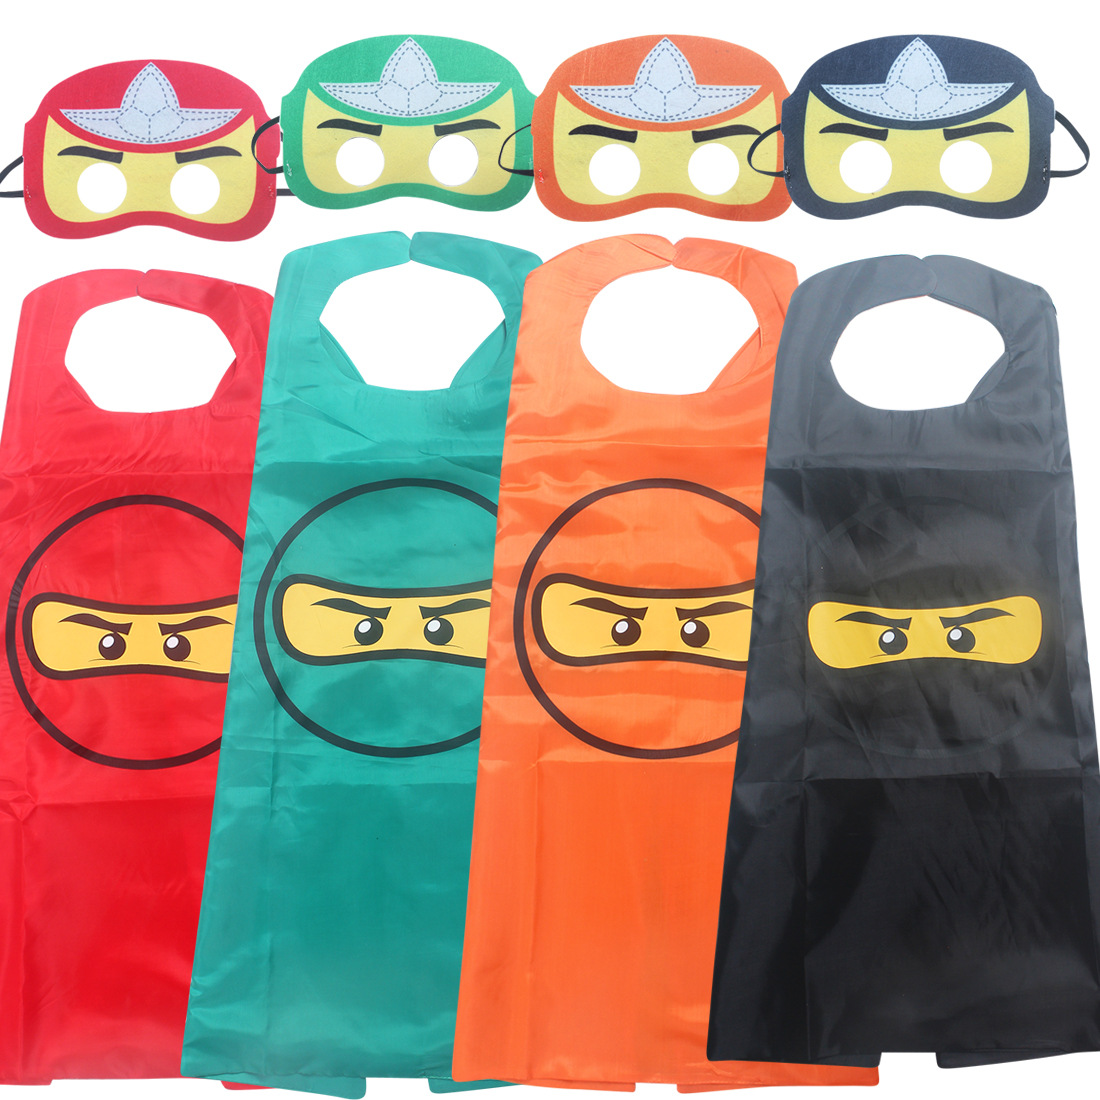 Ninja Ninjago Superhero Spiderman Batman Capes Mask Character For Kids Birthday Party Clothing Halloween cosplay Costumes  2-10Y 1cape 1mask cloak kids superhero capes boy children superman batman spiderman halloween baby costume cosplay super hero mask